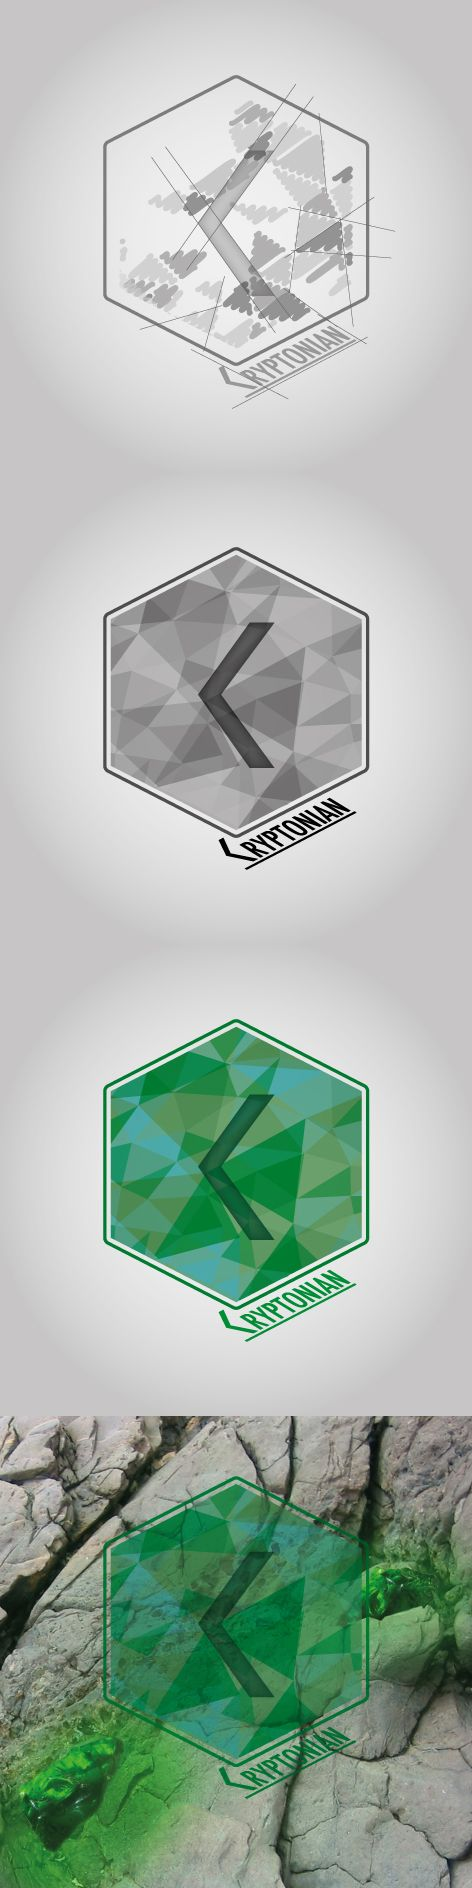 Logo per Kryptoniano produttore di Kryptonite